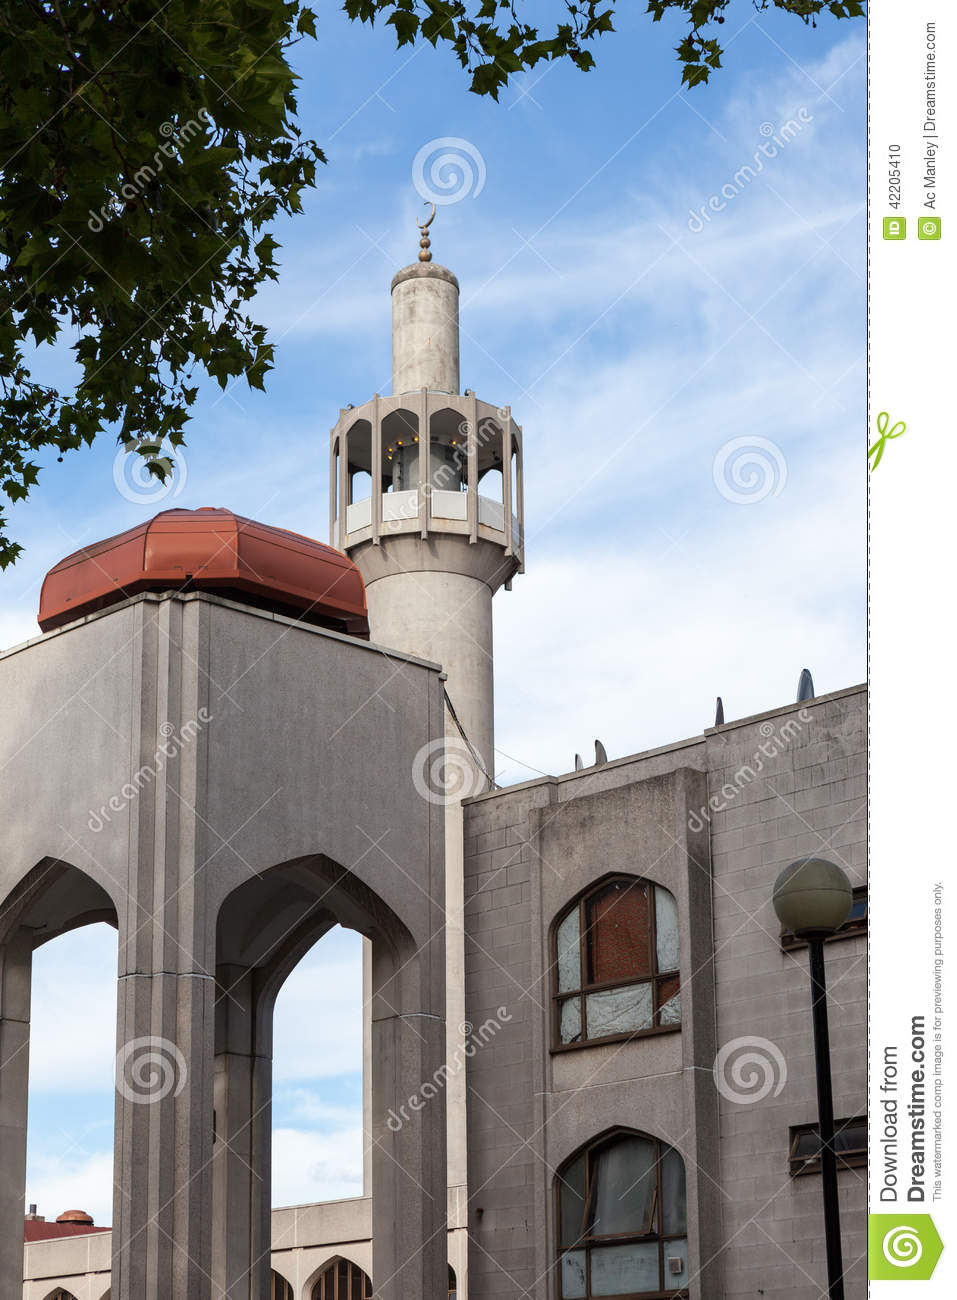 Download London Central Mosque (Regents Park Mosque) Stock Photo - Image of central, pray: 42205410